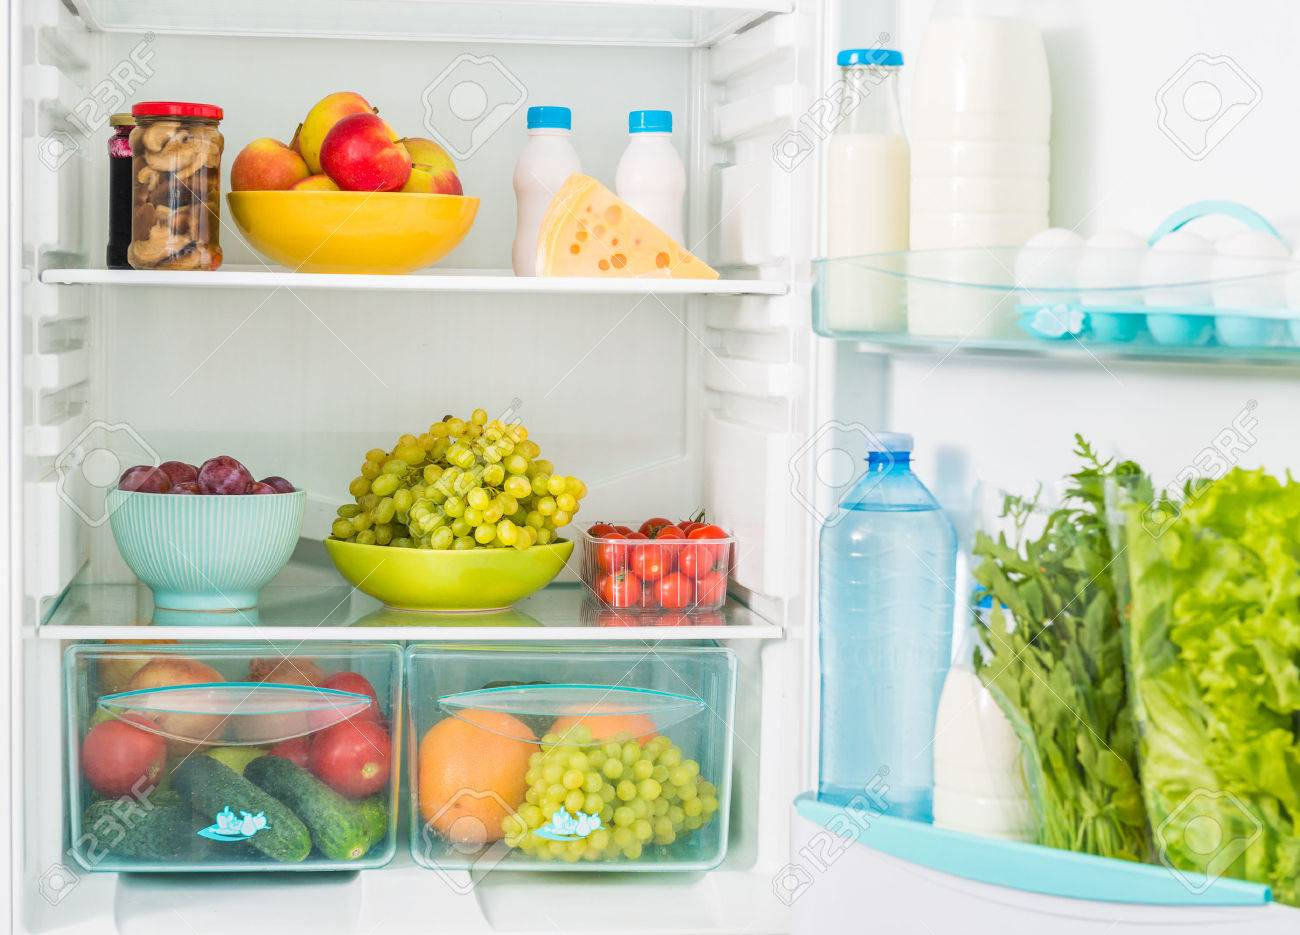 fridge inseide filled with different fresh food - 51676942